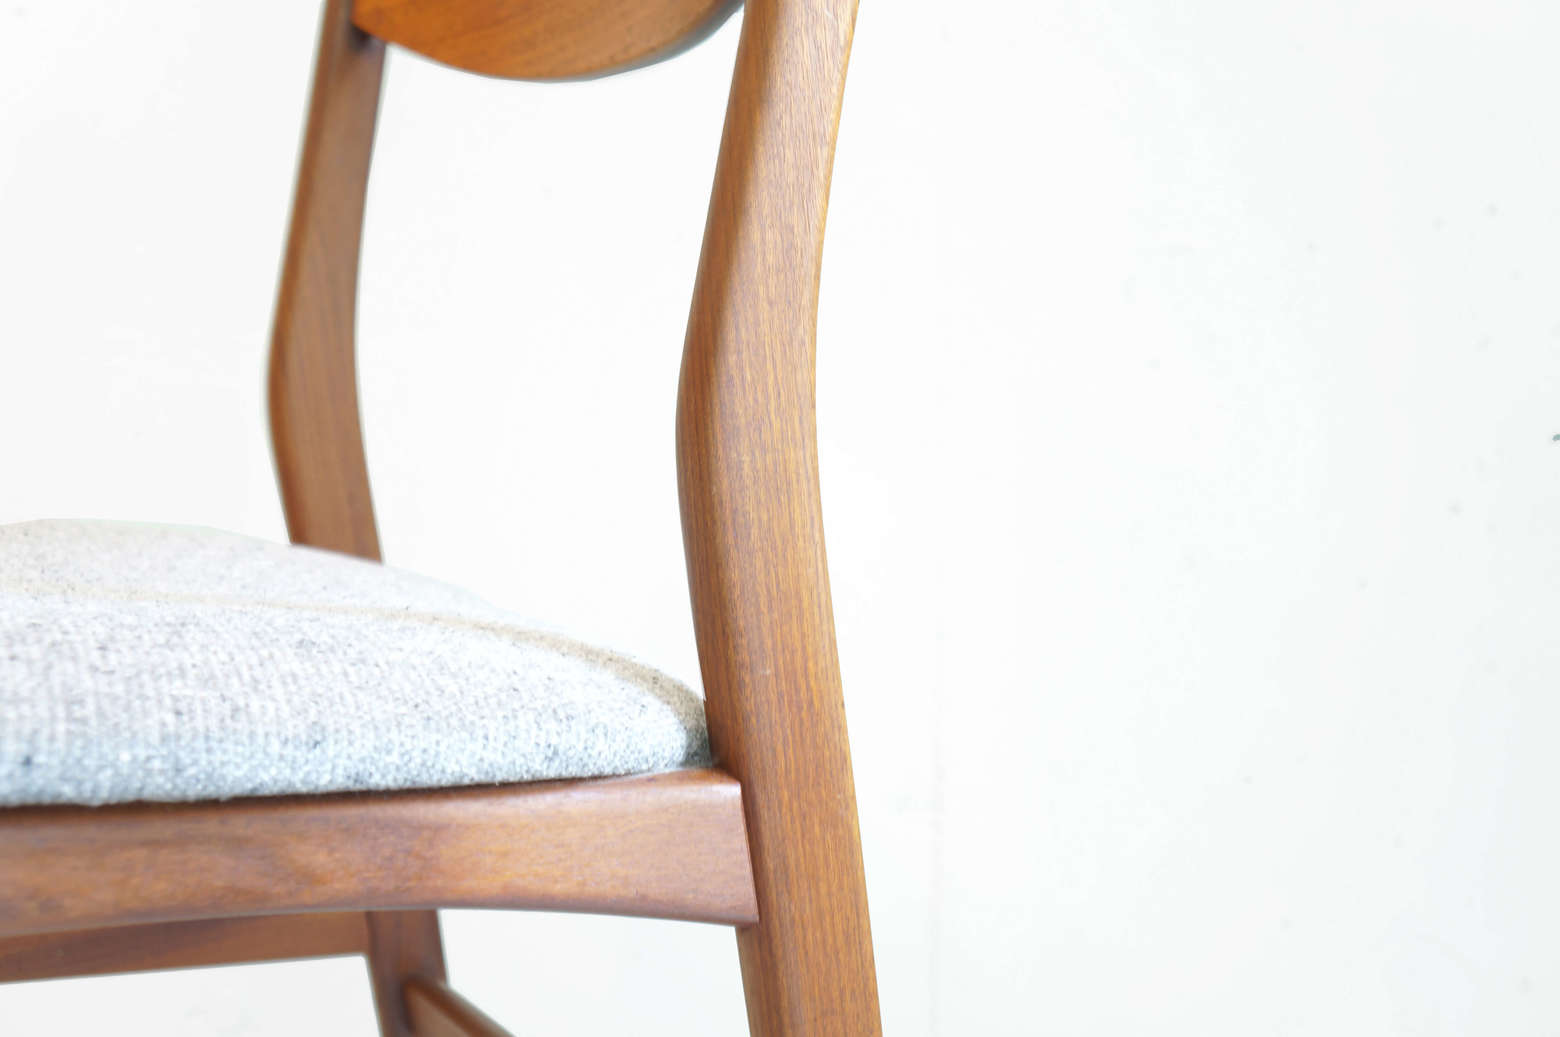 Danish Vintage Dining Chair/デンマーク ヴィンテージ ダイニングチェア 2